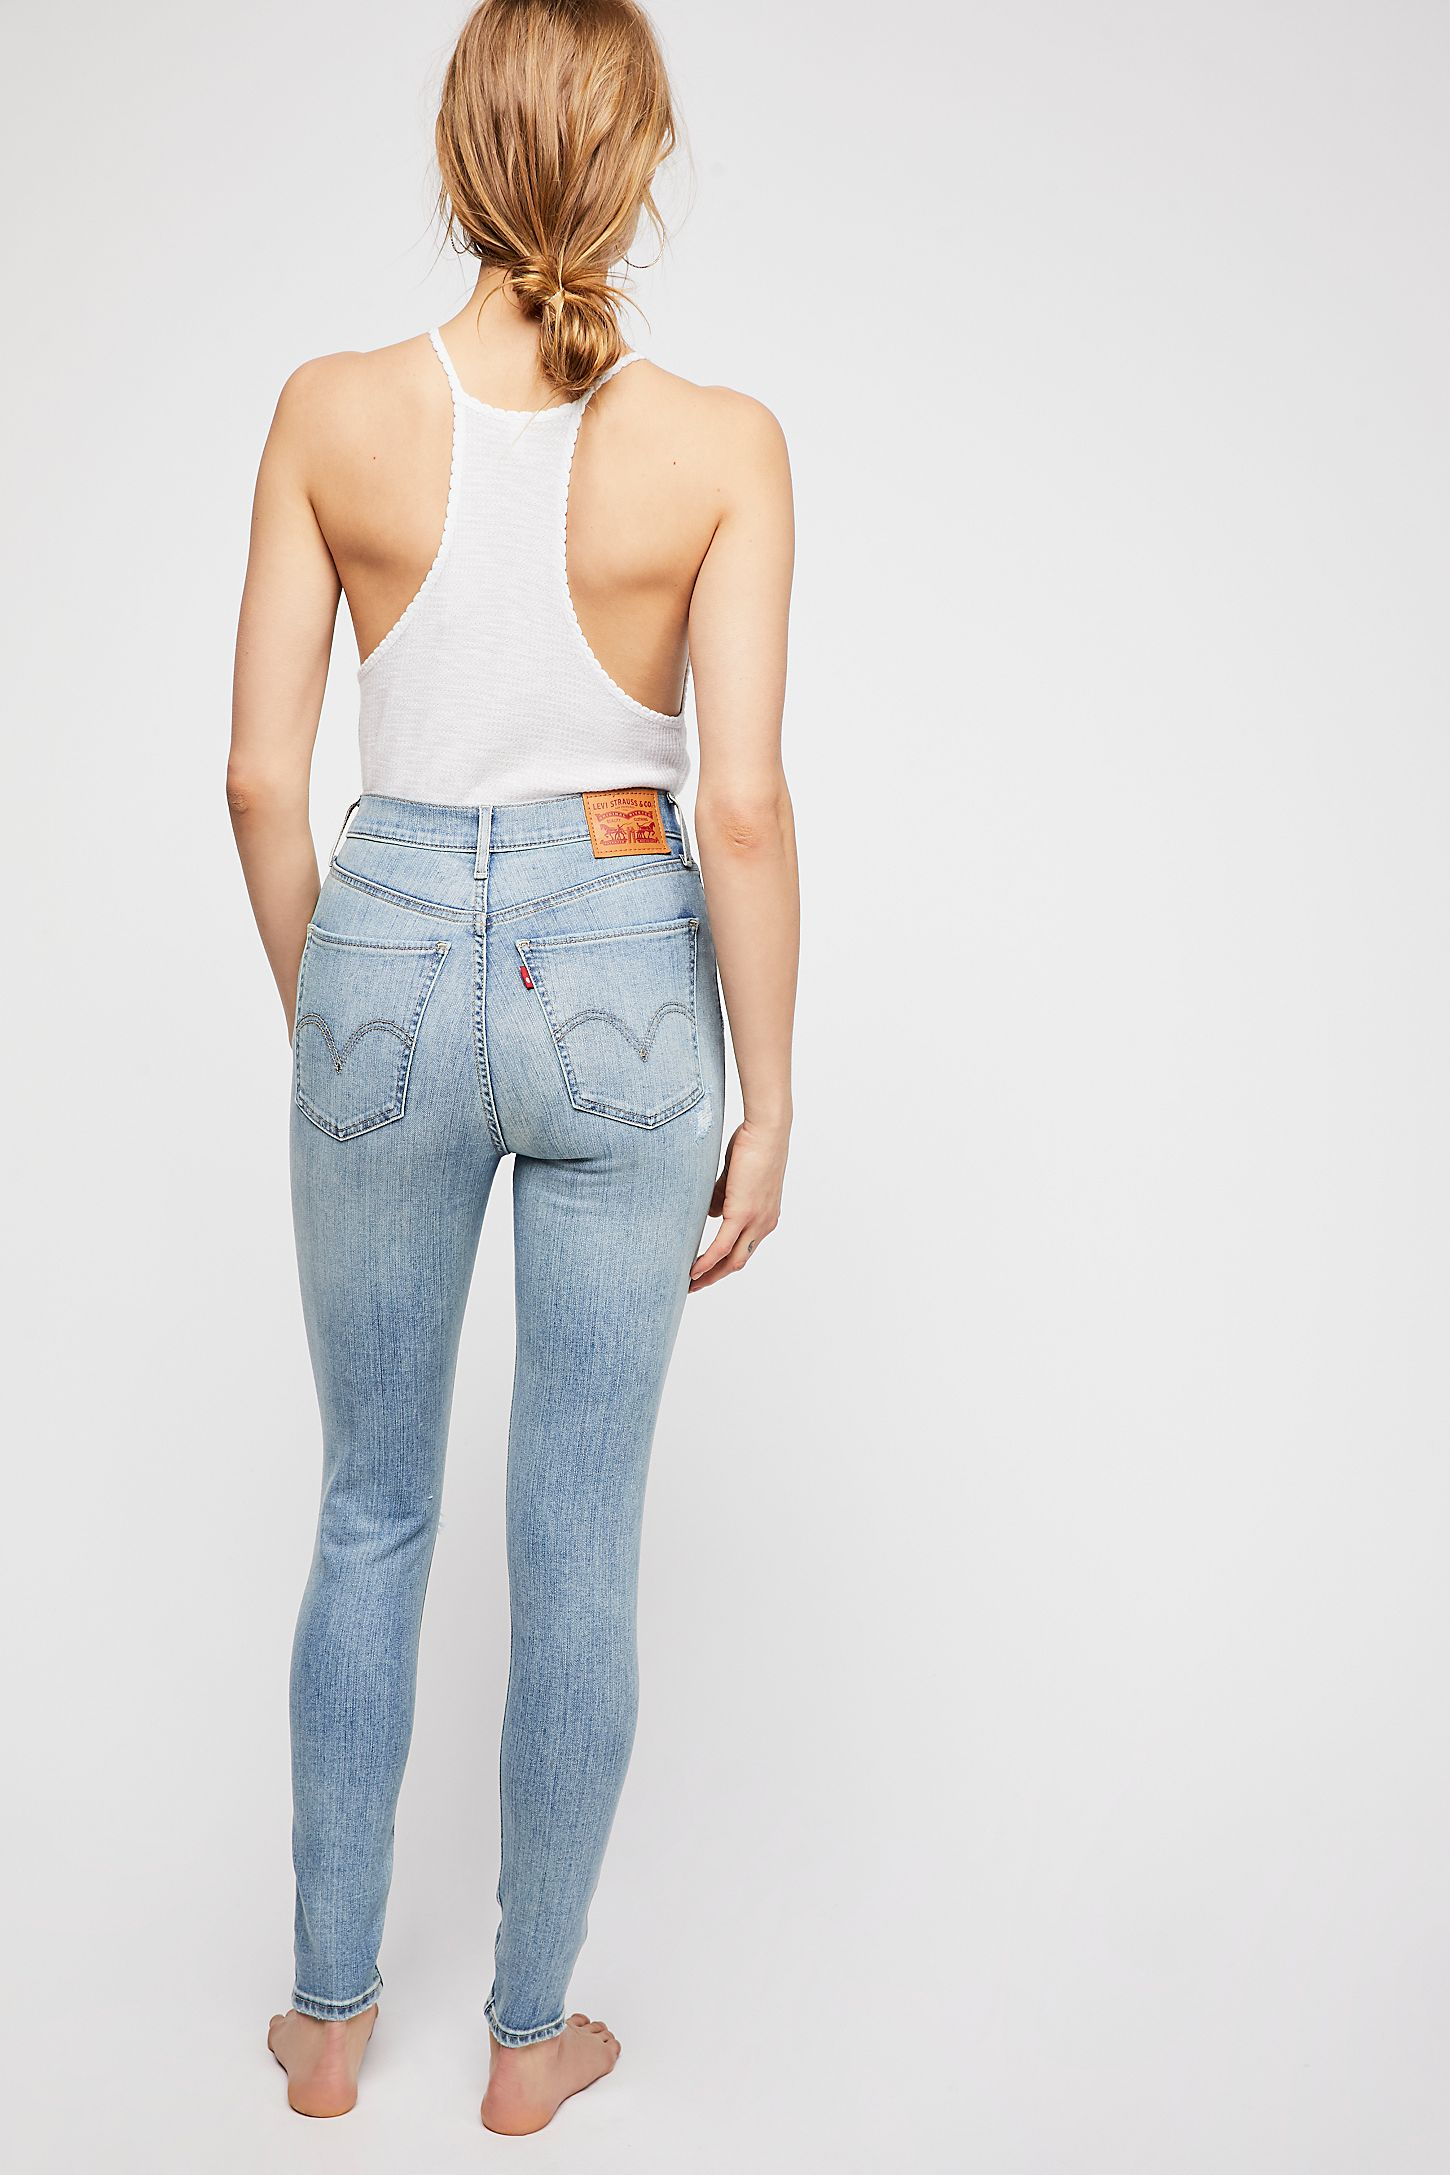 a296de53b77 Slide View 3: Levi's Mile High Super Skinny Jeans